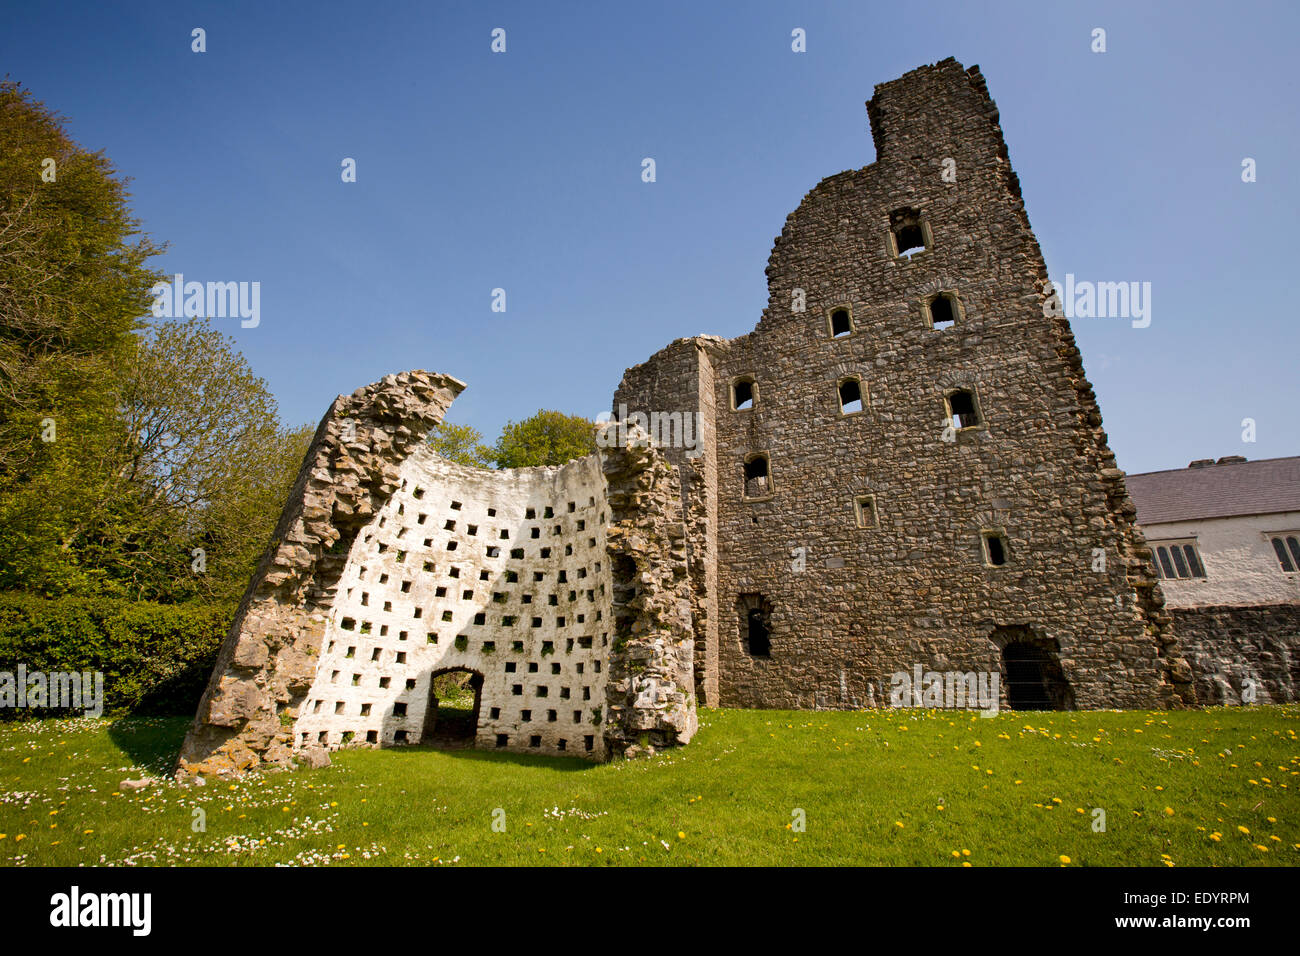 UK, Wales, Swansea, Gower, Oxwich Castle, dovecote ruins - Stock Image